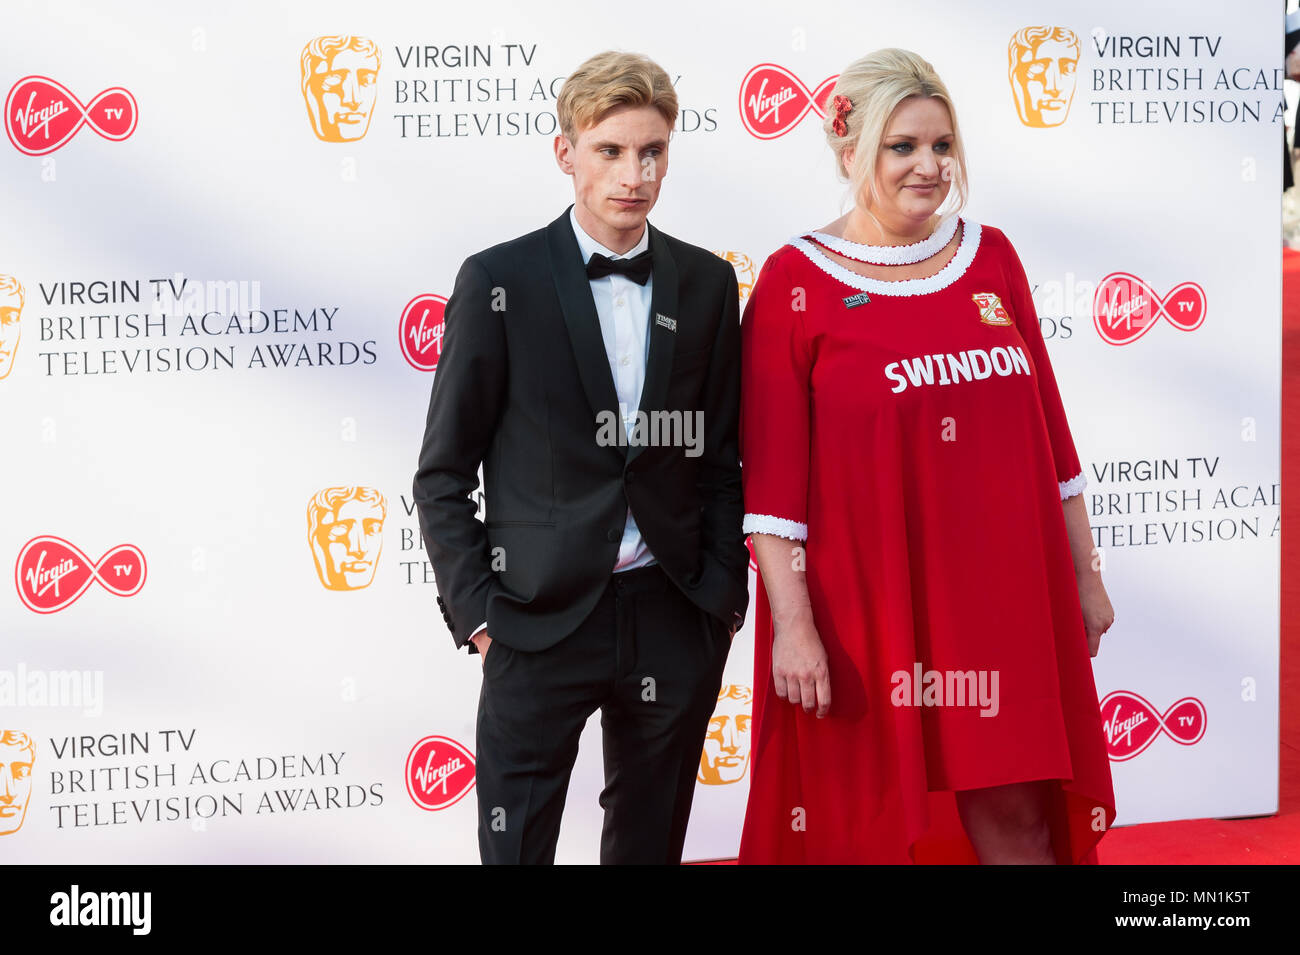 London, UK. 13th May 2018. Charlie Cooper and Daisy May Cooper attend the Virgin TV British Academy Television Awards ceremony at the Royal Festival Hall. Credit: Wiktor Szymanowicz/Alamy Live News. Stock Photo